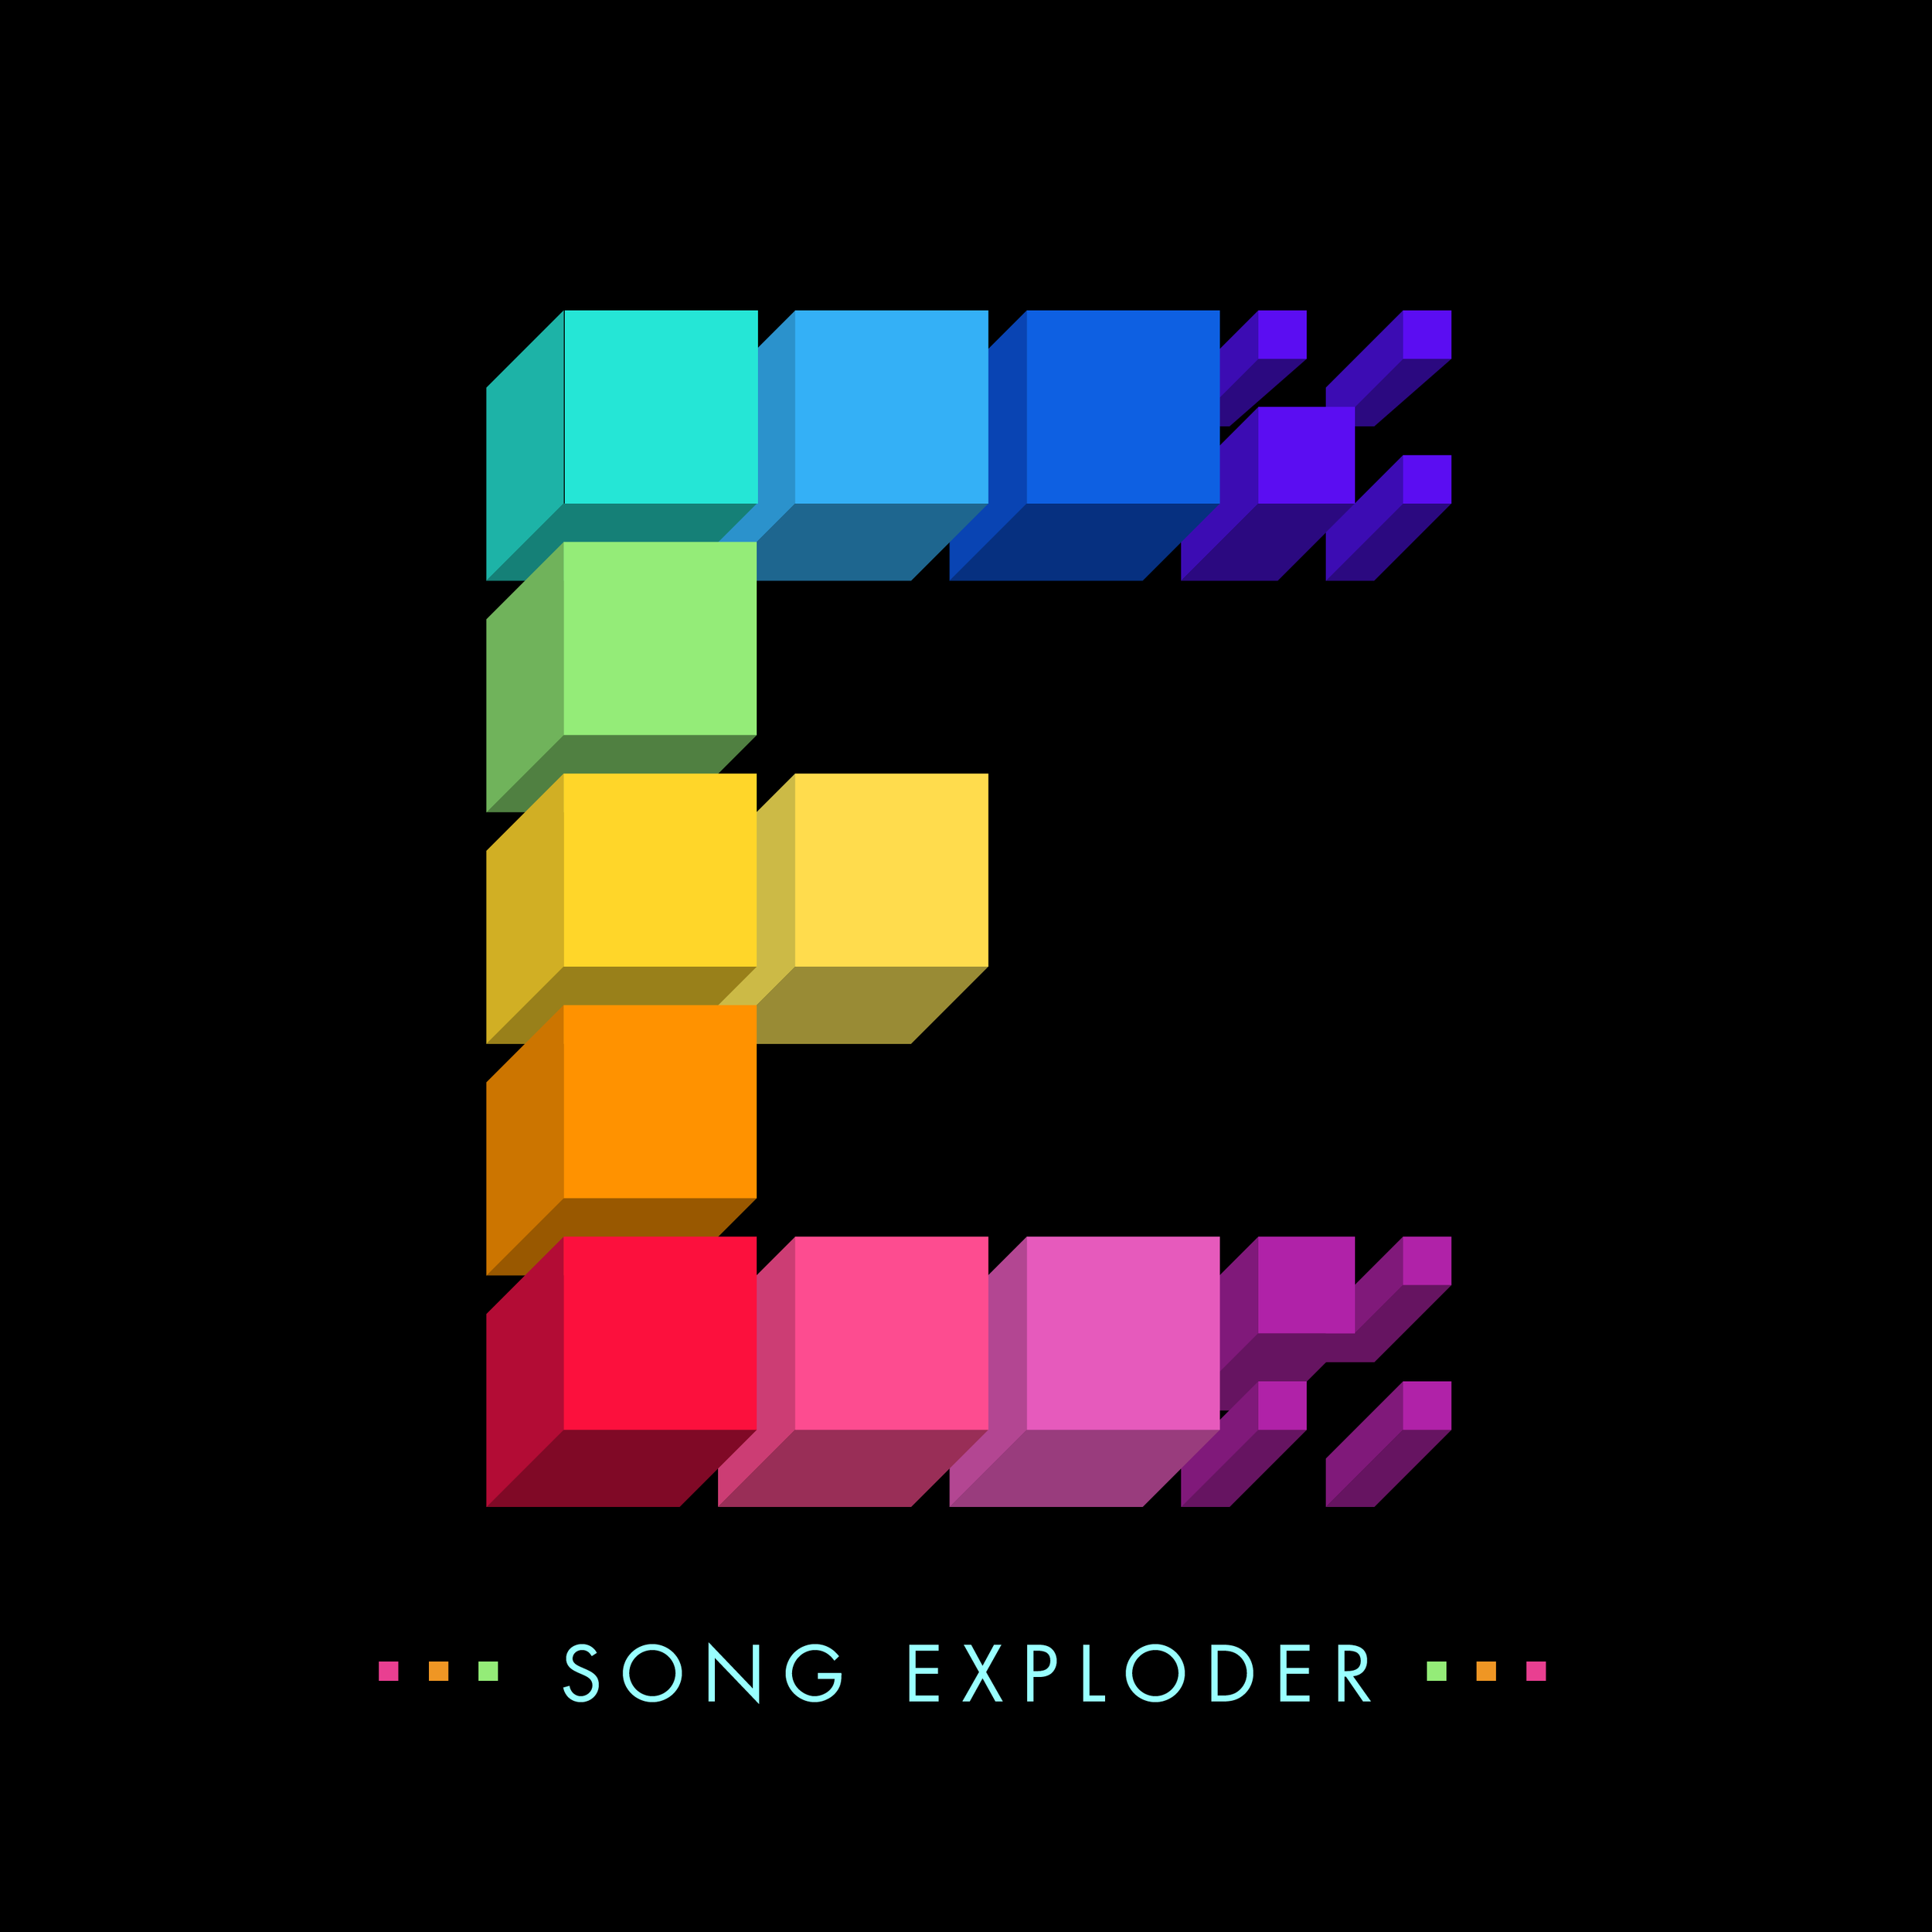 #5 - Song Exploder by Hrishikesh Hirway